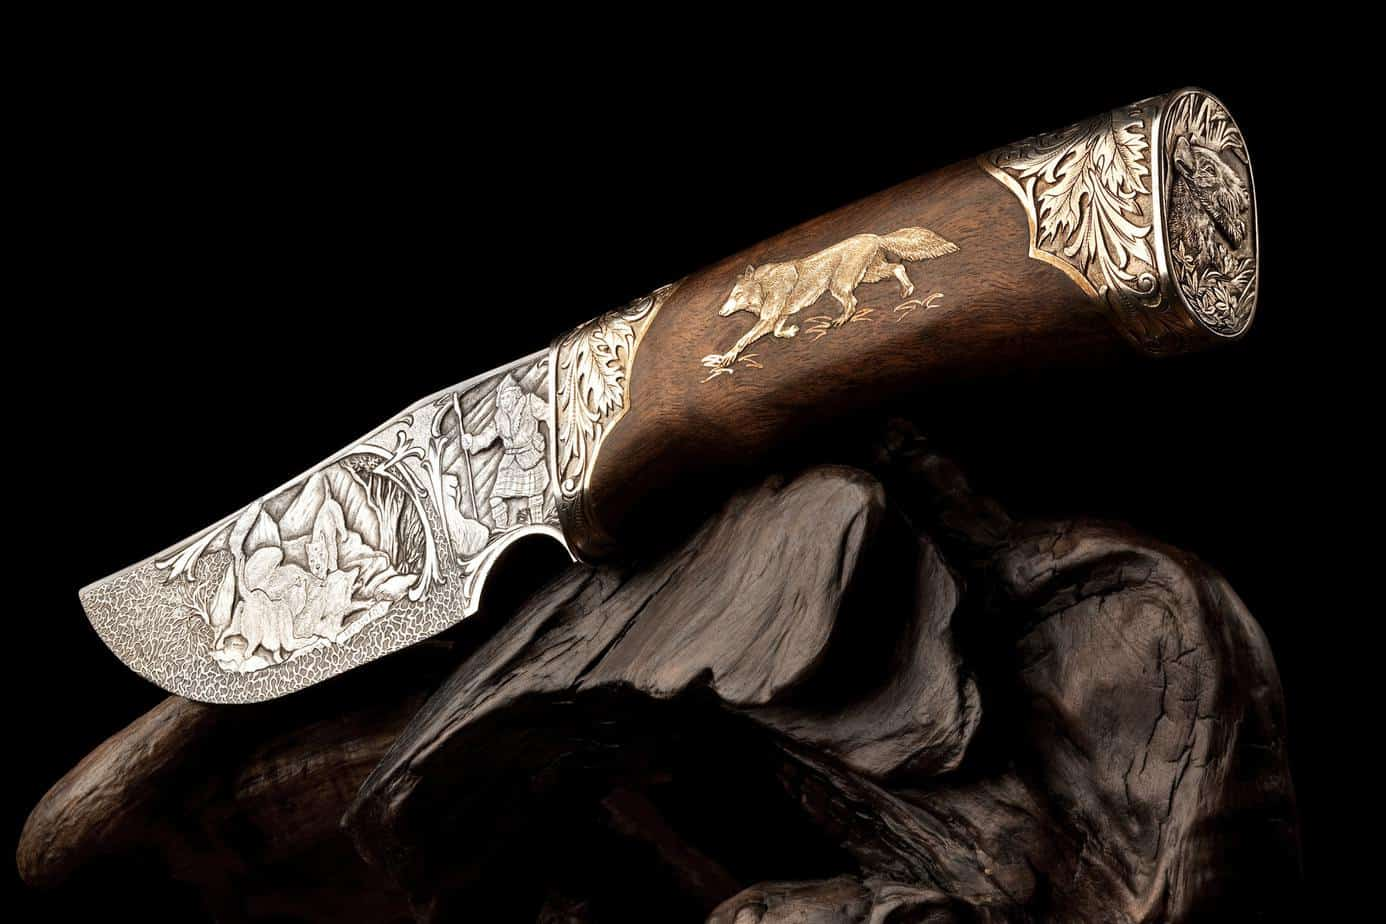 Ornamental hunting knife.